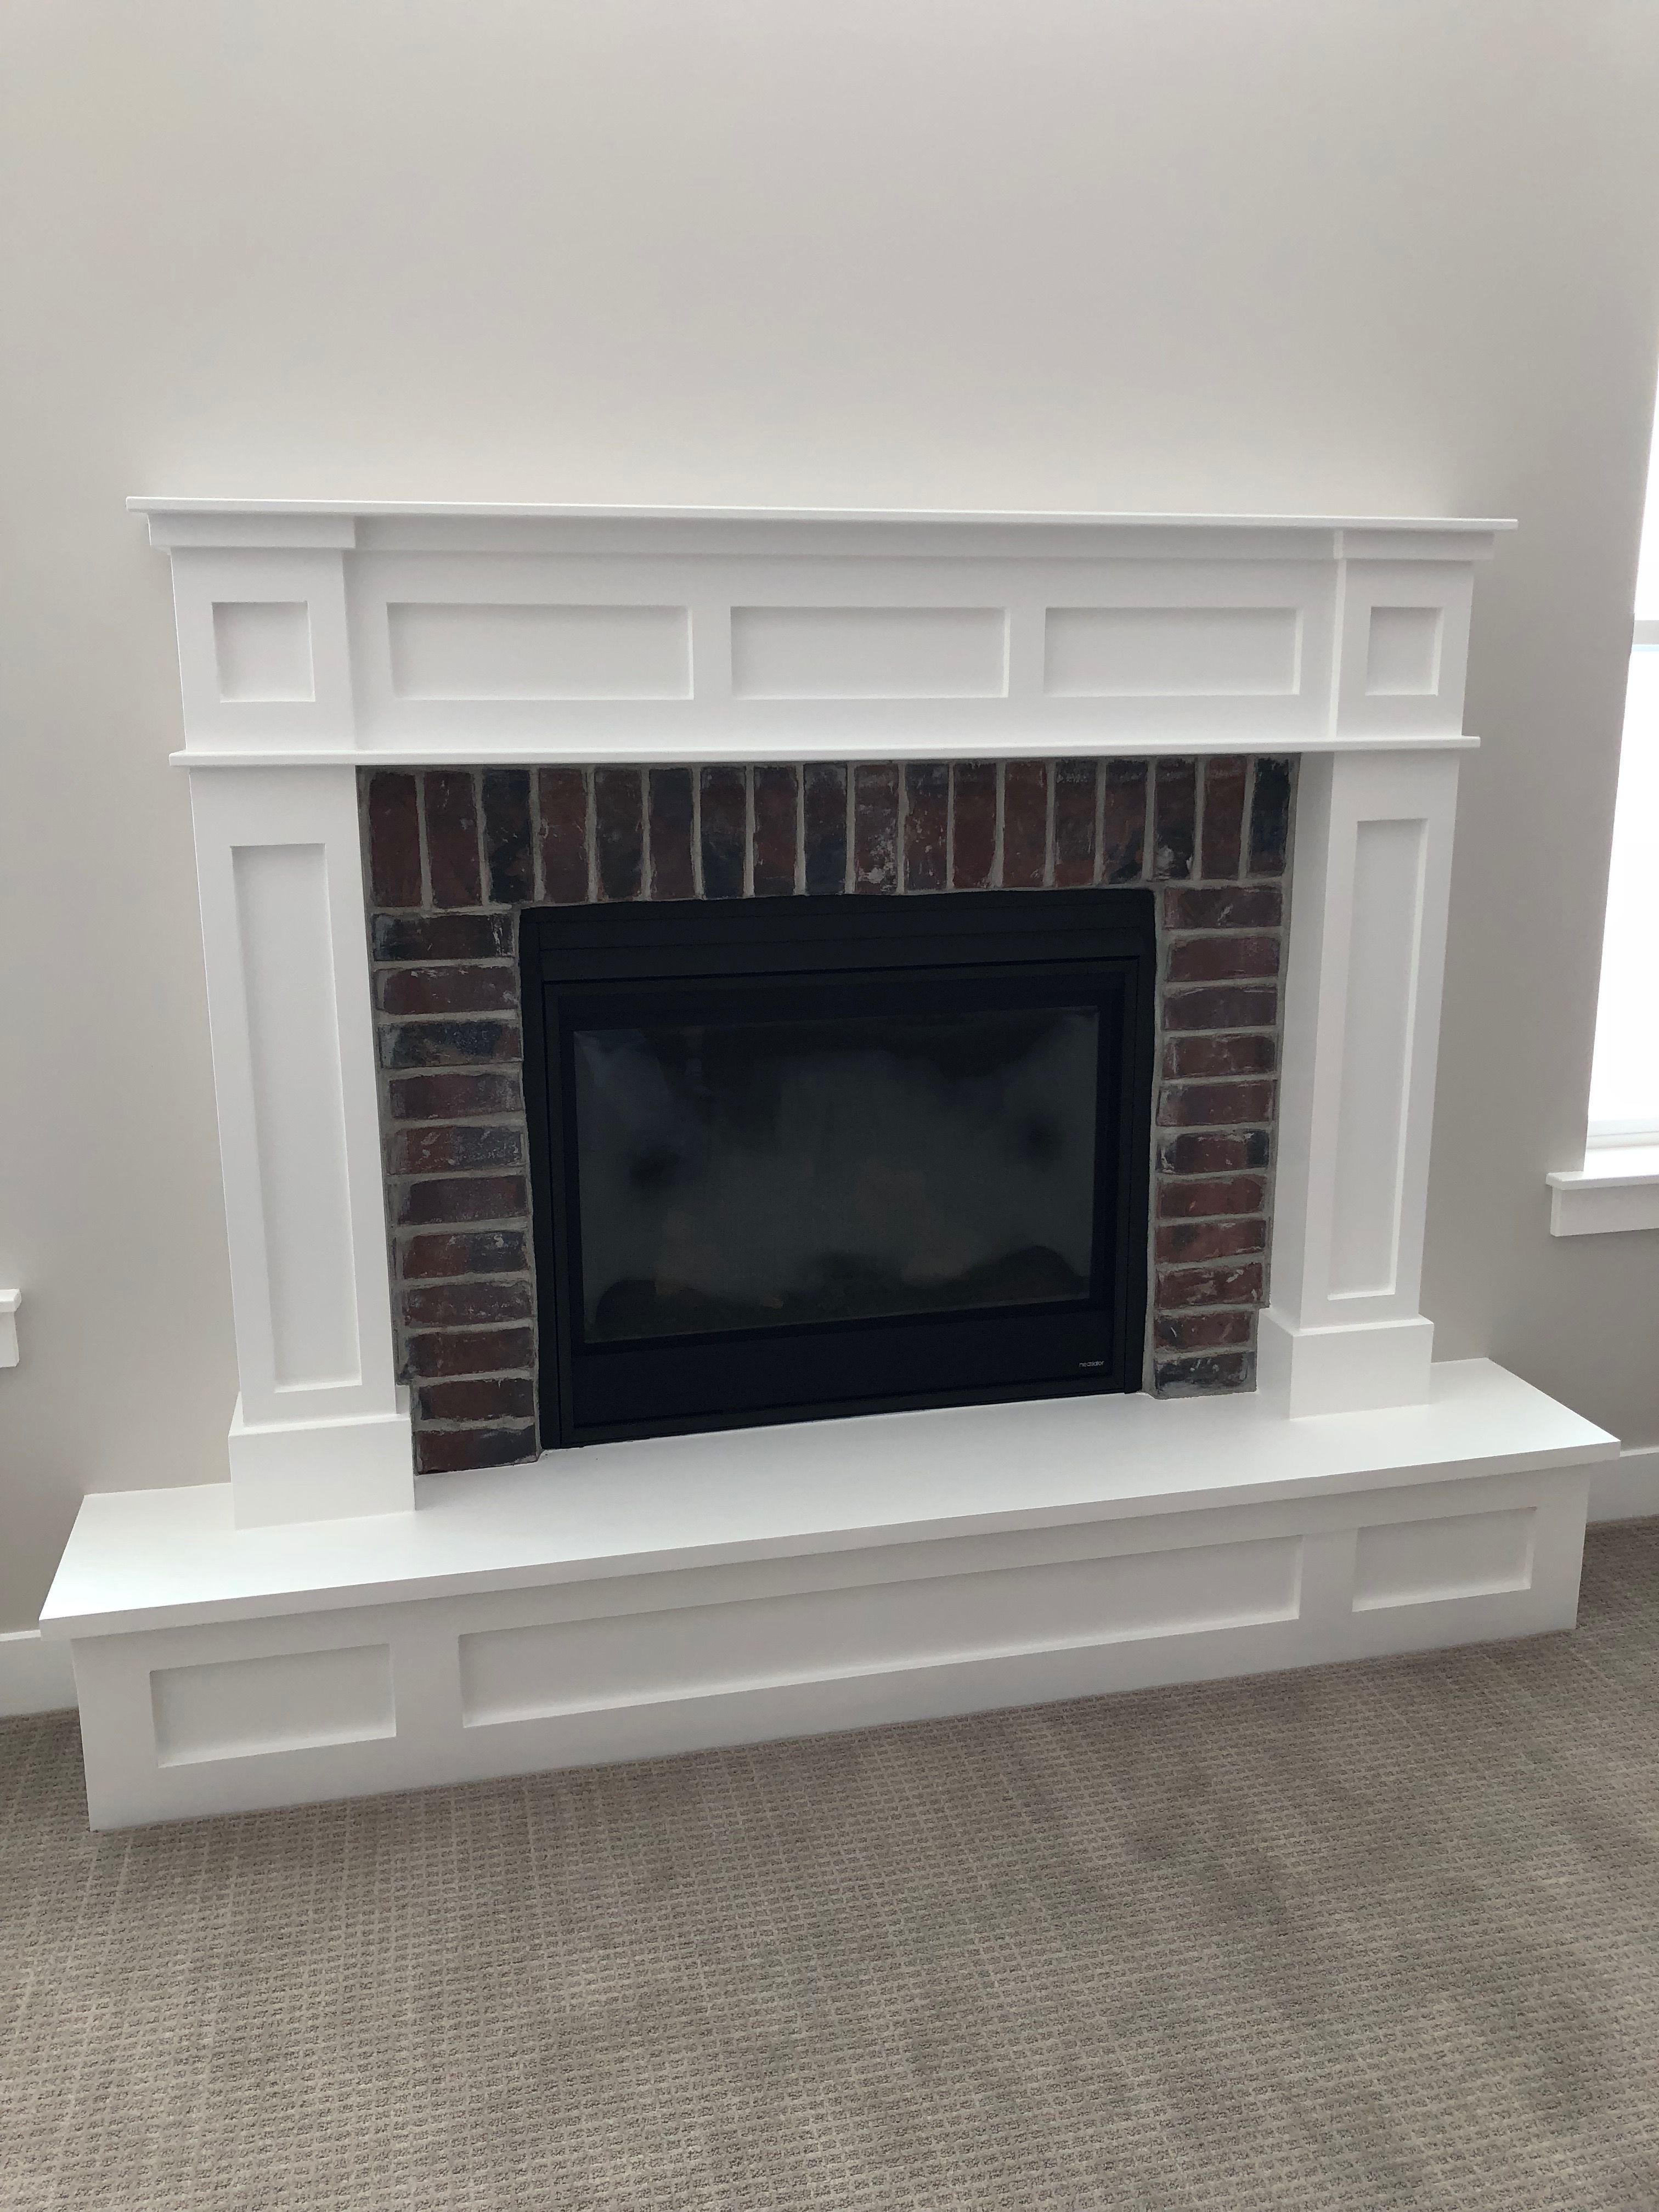 Our Fireplace Mantle And Raised Hearth White Craftsman Style But Ours Will Have A Carrara Marble Hex Tile S Fireplace Mantle Home Fireplace White Fireplace